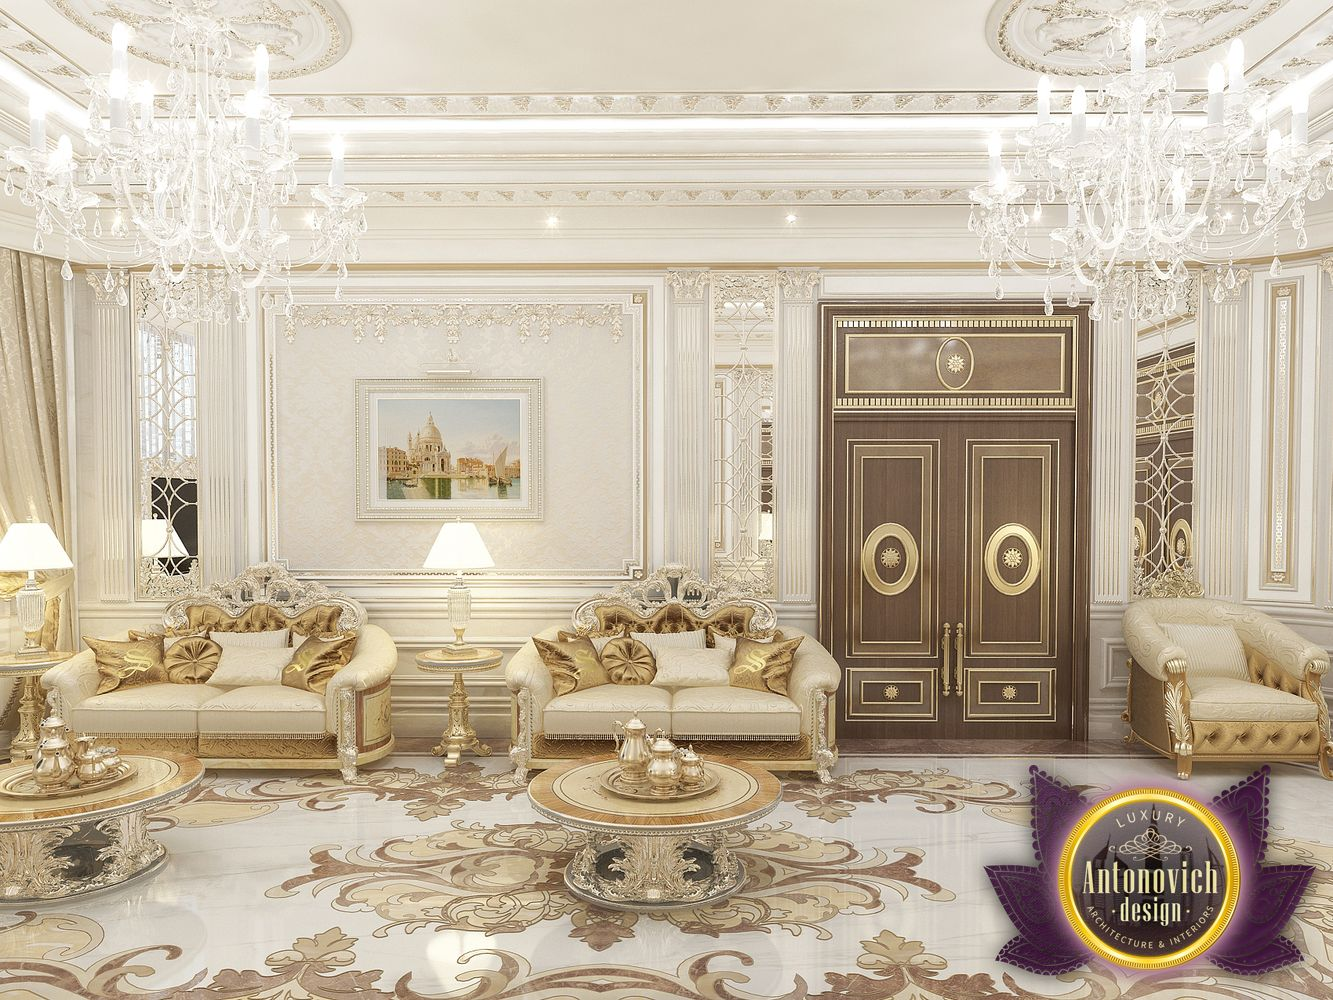 LUXURY ANTONOVICH DESIGN UAE: Living room interior design